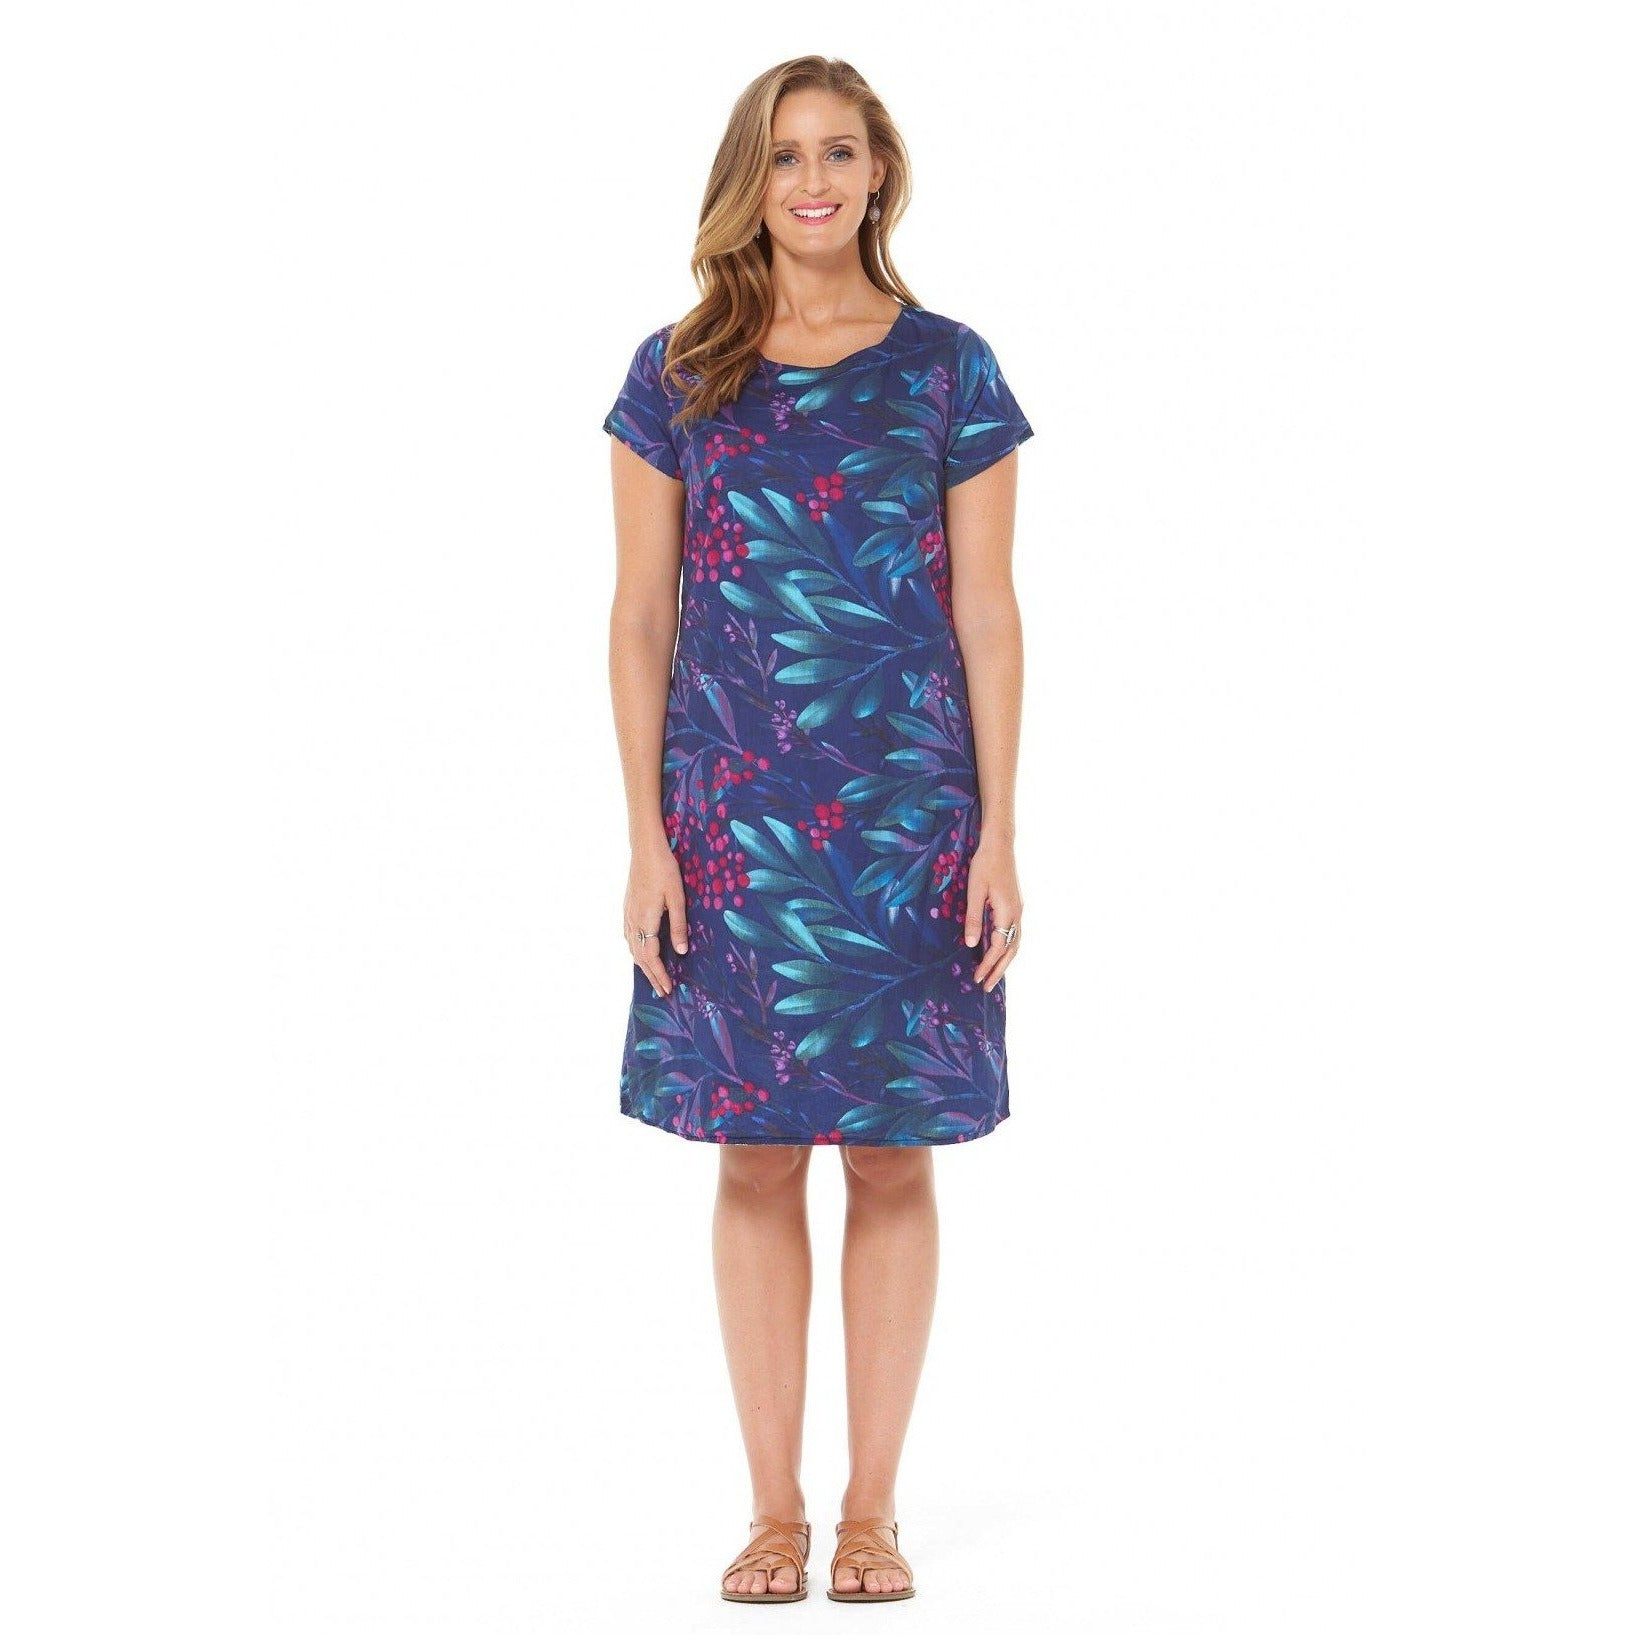 Rasaleela Amber Cotton Reversible Dress in Berry and Sky Print